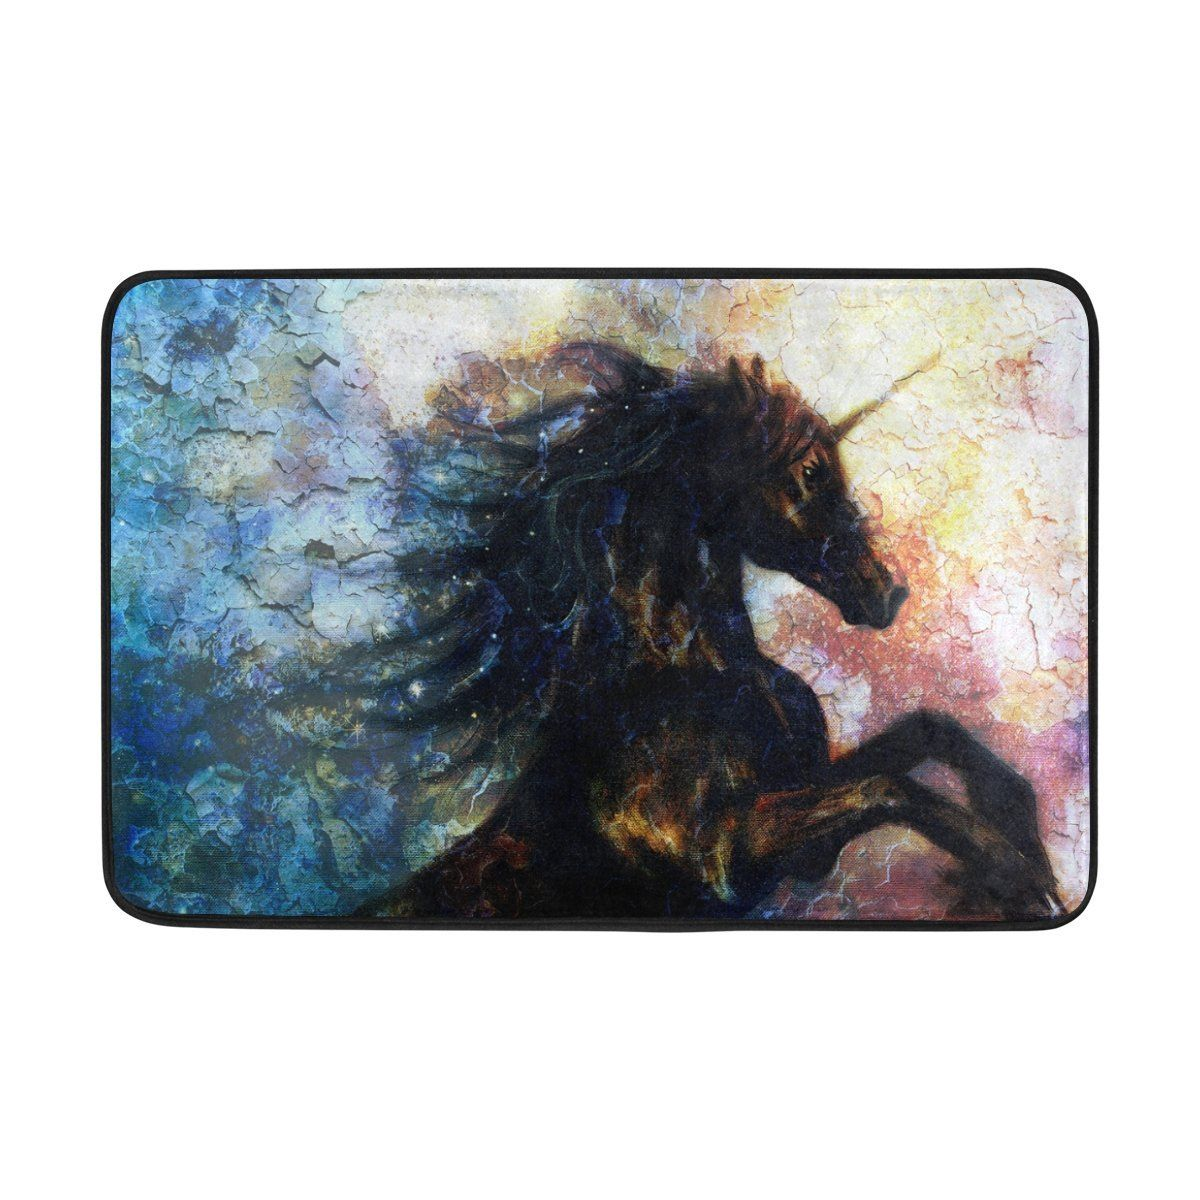 Amazon.com : DemonCo Black Unicorn Horse Door Mat Rug, Animal Safari  Wildlife Dancing